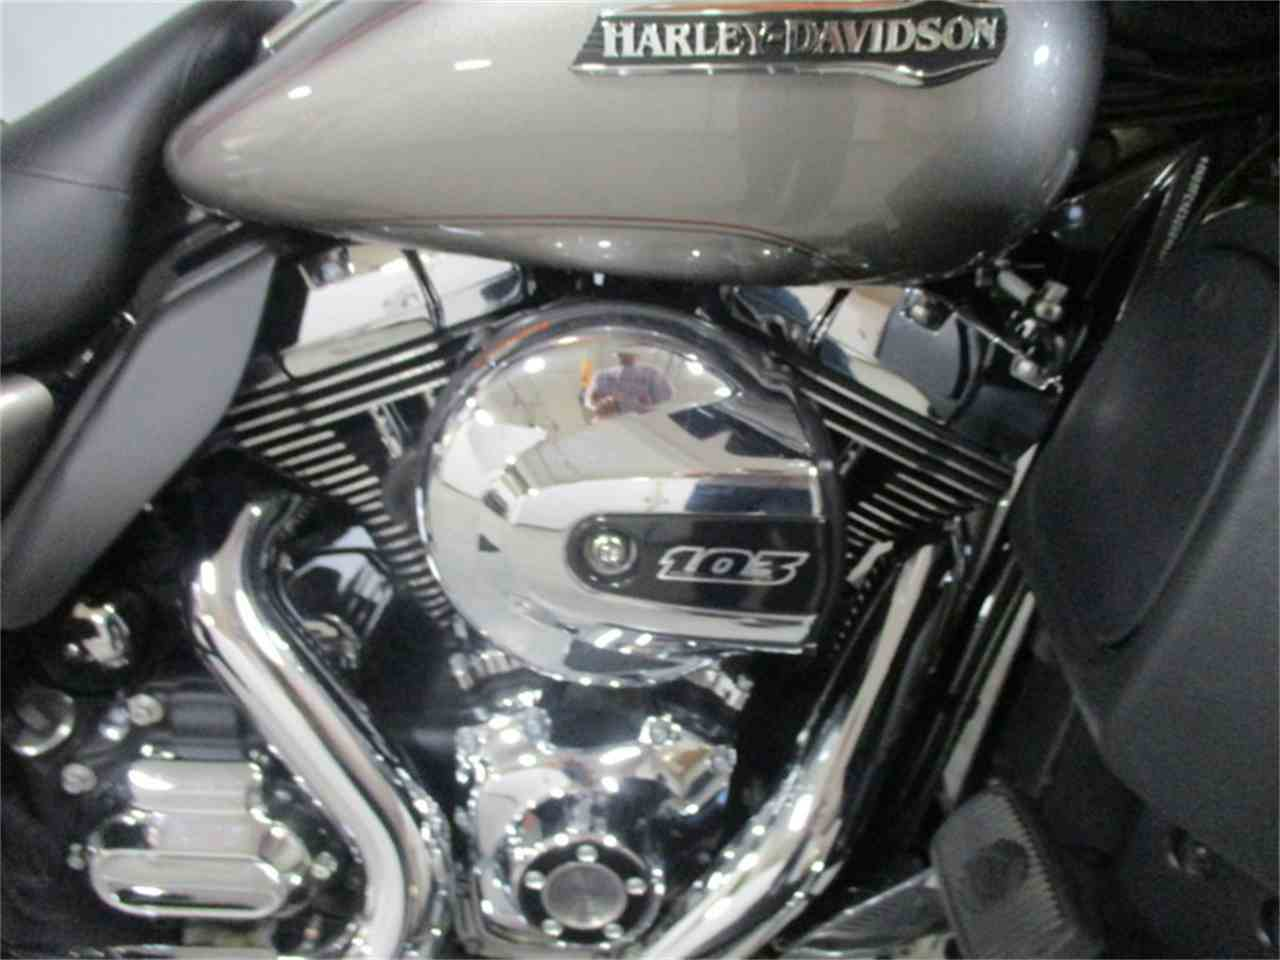 Large Picture of '16 FLHTCU - Electra Glide® Ultra Classic® - M9DO